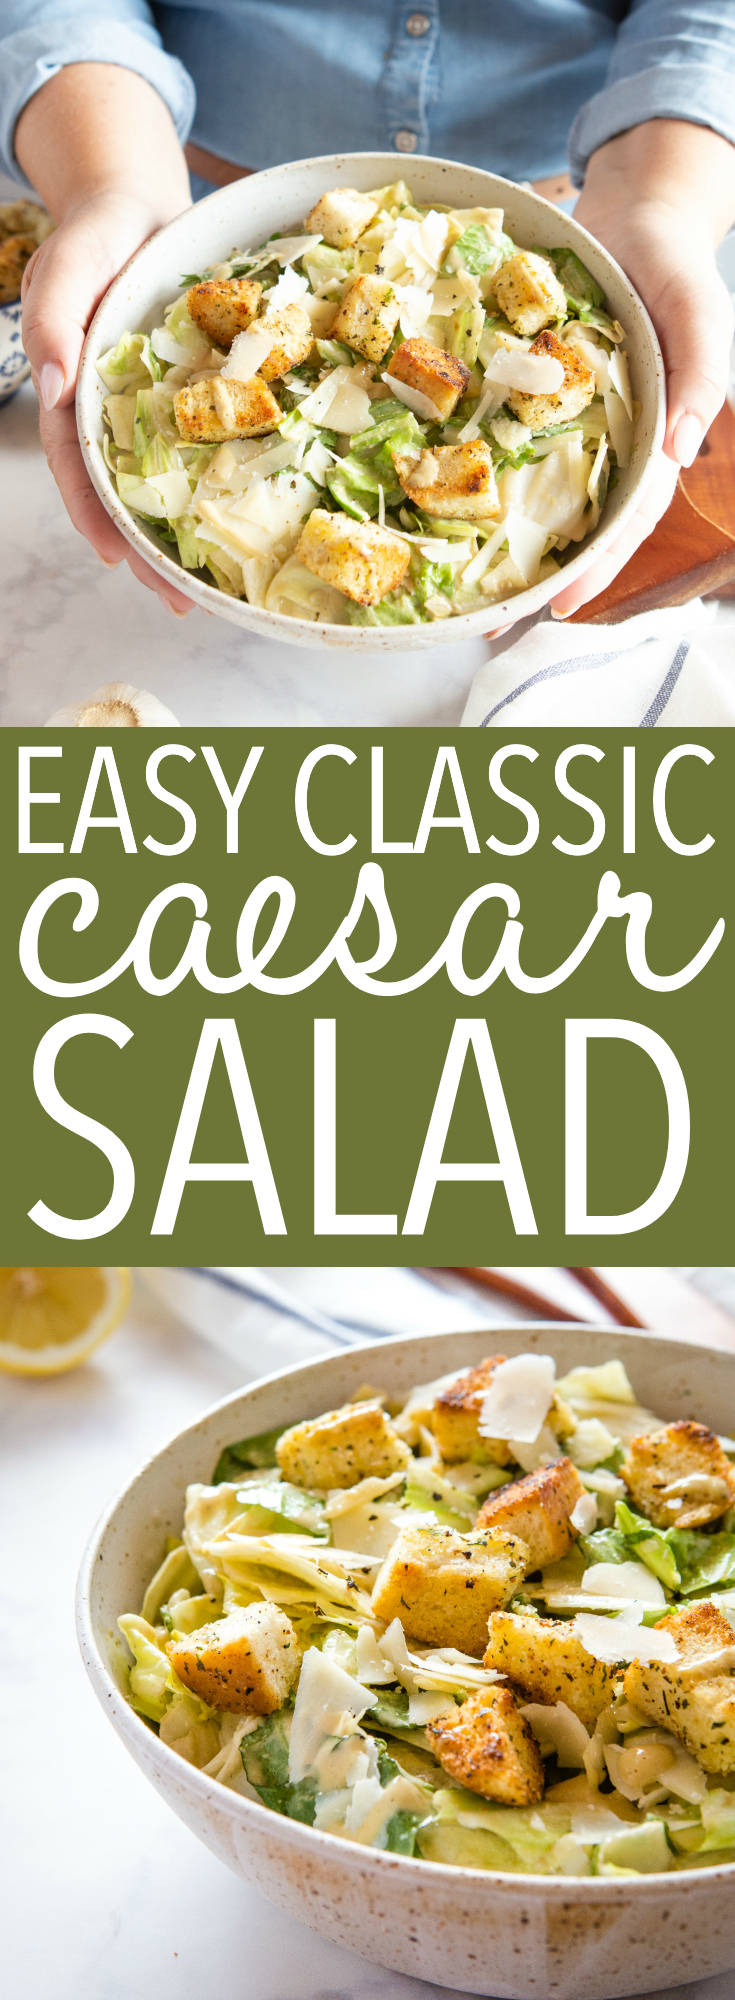 This Easy Caesar Salad recipe creates a restaurant-quality salad made simple with an easy blender dressing, shaved Parmesan, and homemade croutons! Recipe from thebusybaker.ca! #caesarsaladrecipe #holidays #saladrecipe #specialoccasion via @busybakerblog